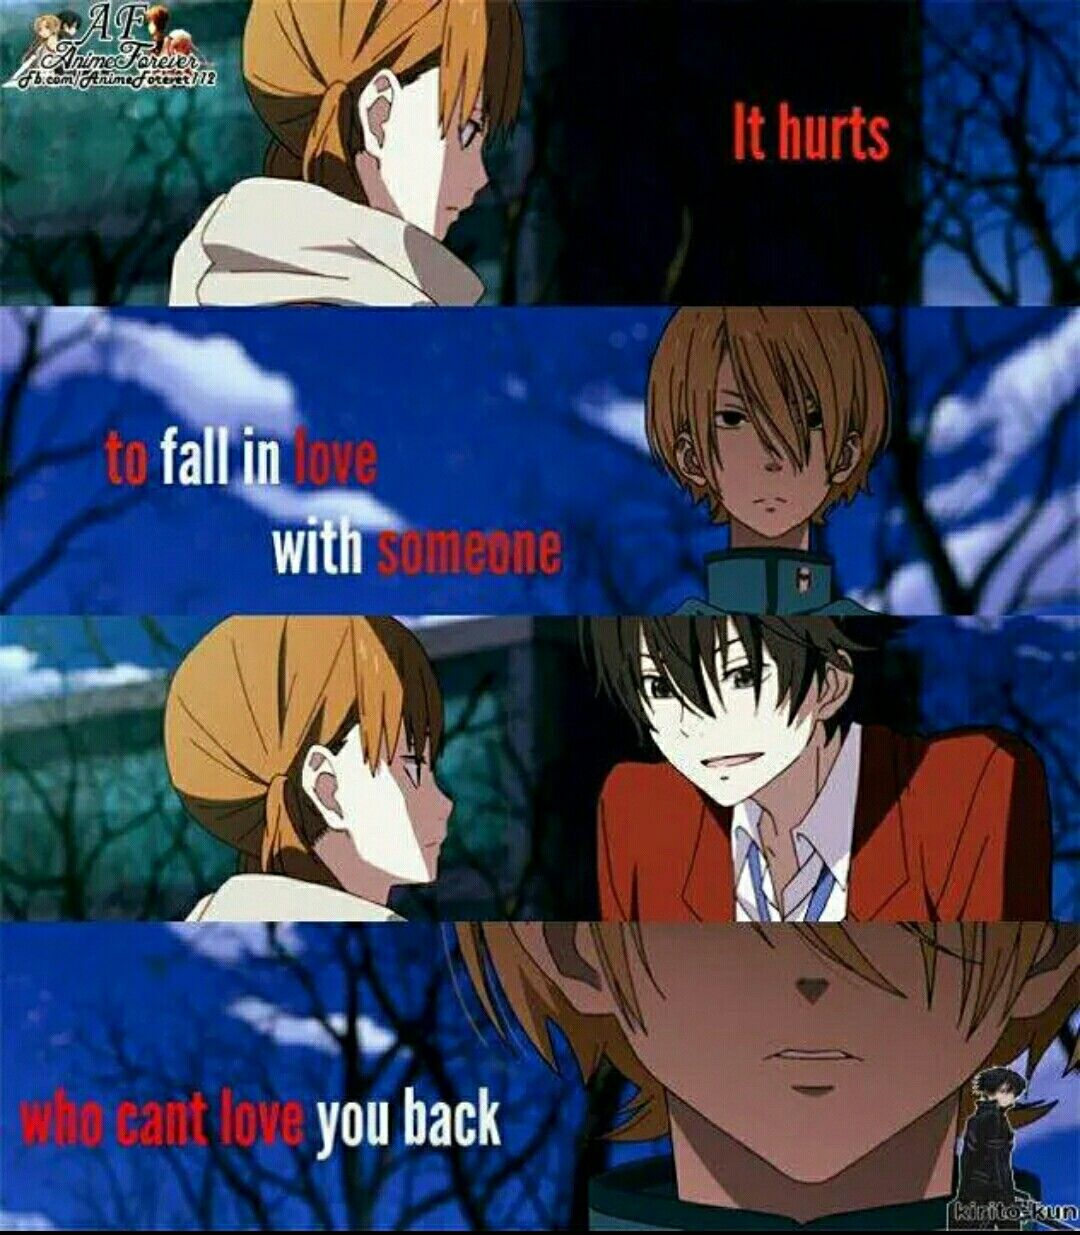 Pin by AsiA on animemangamanhuawebtoon Anime love